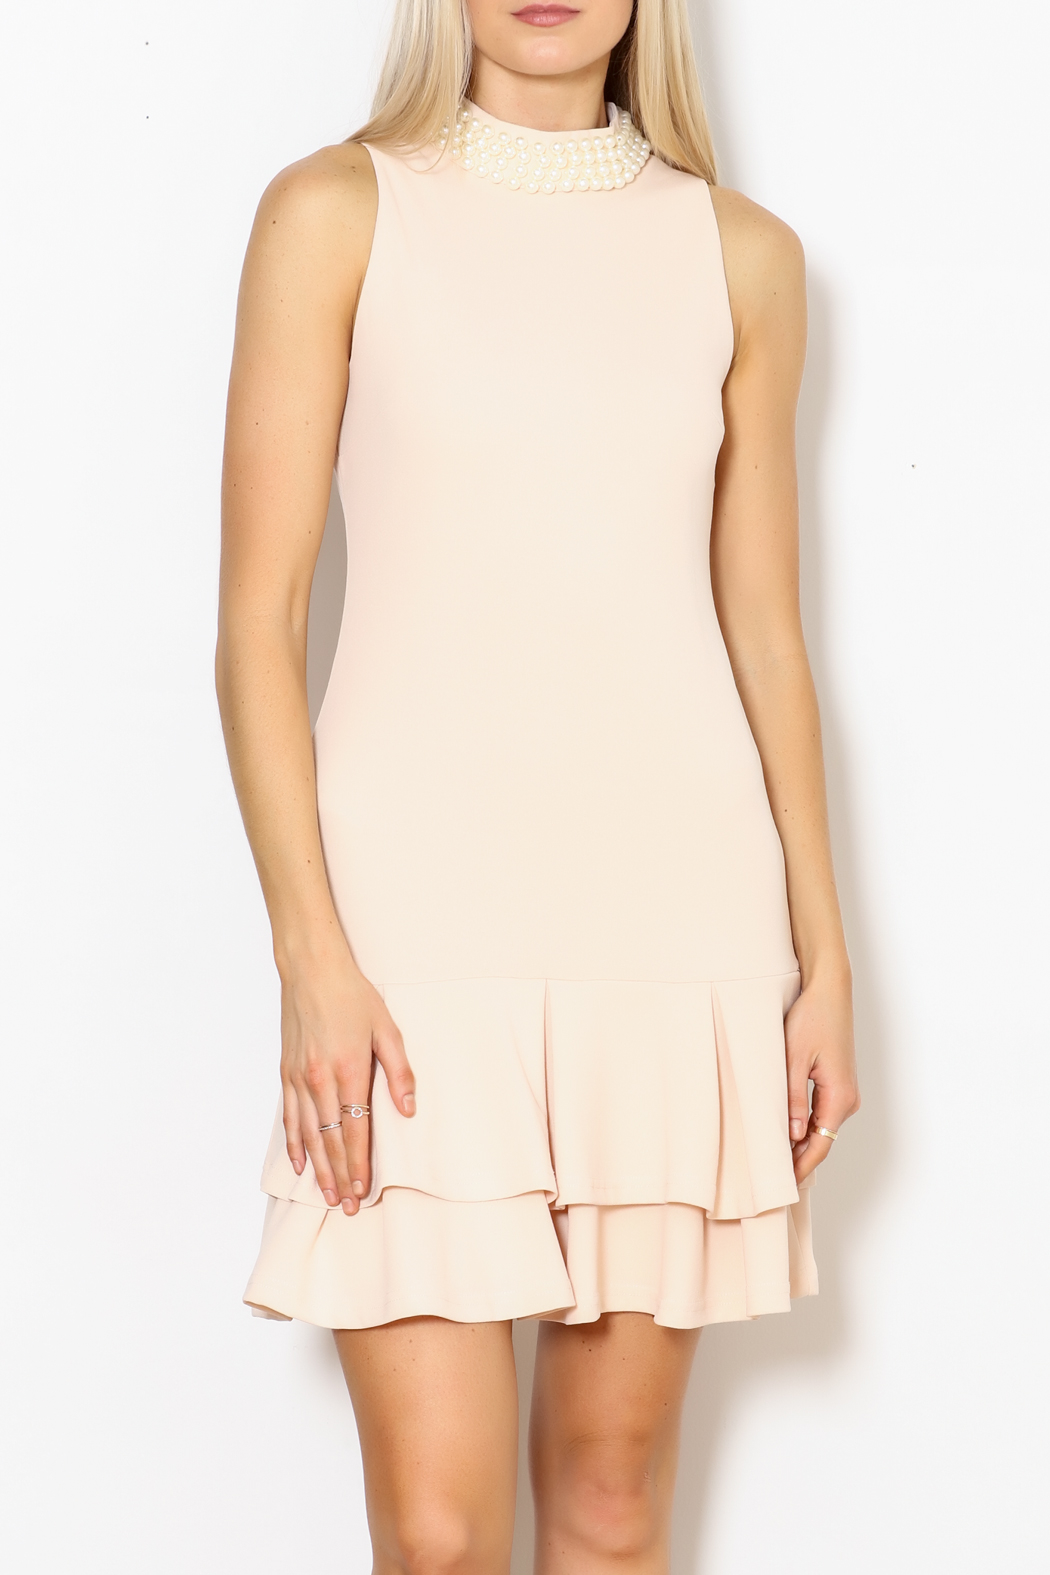 Ina Pearl Collar Dress - Front Full Image